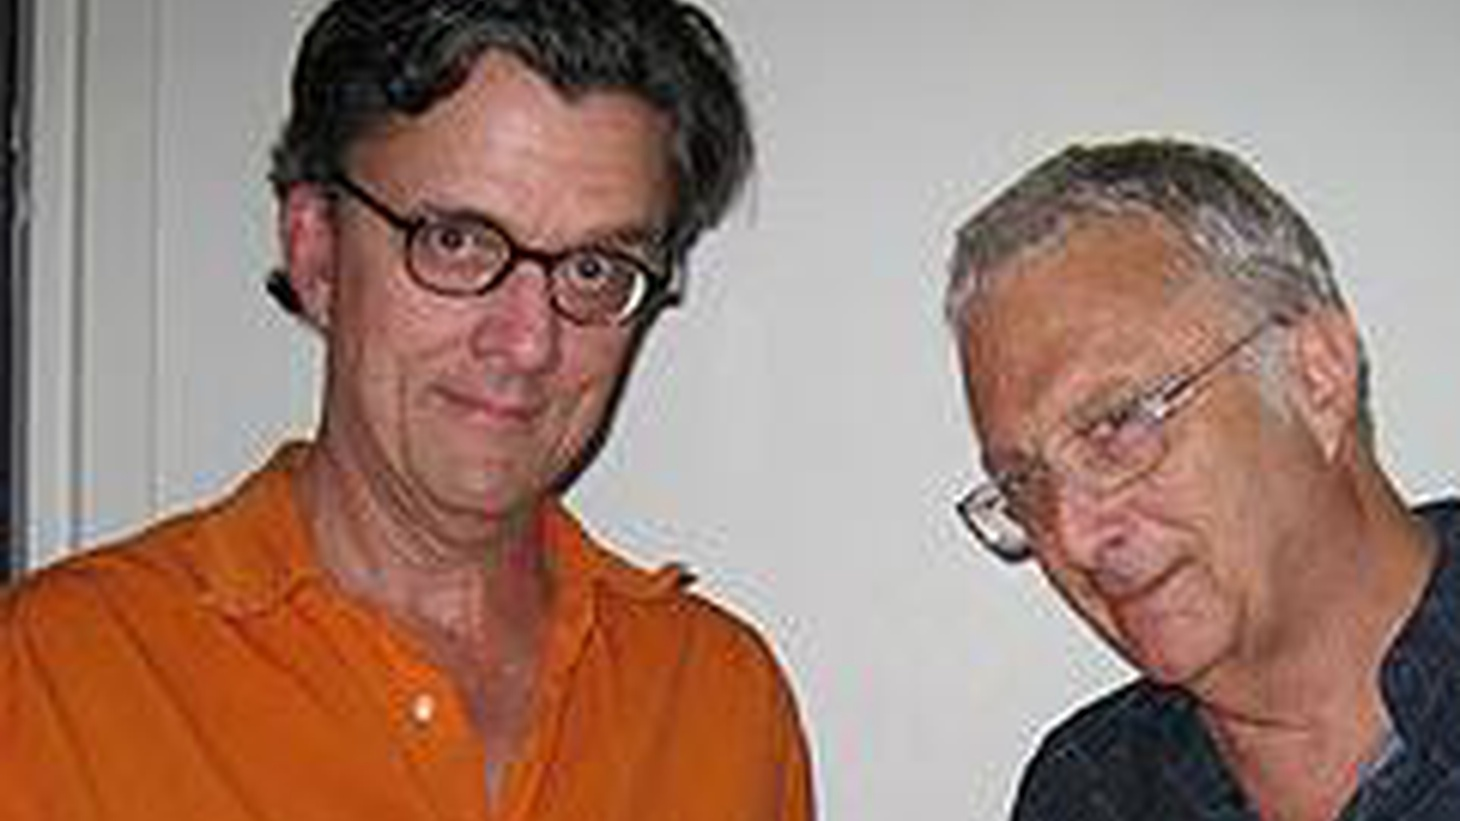 """Kurt Andersen talks music and politics with songwriter Randy Newman, who performs songs off his new record Harps & Angels and explains why he wrote """"A Few Words in Defense of Our Country."""" Then, Kurt asks cartoonist and illustrator Kyle Baker about his new graphic historic novel, Nat Turner."""